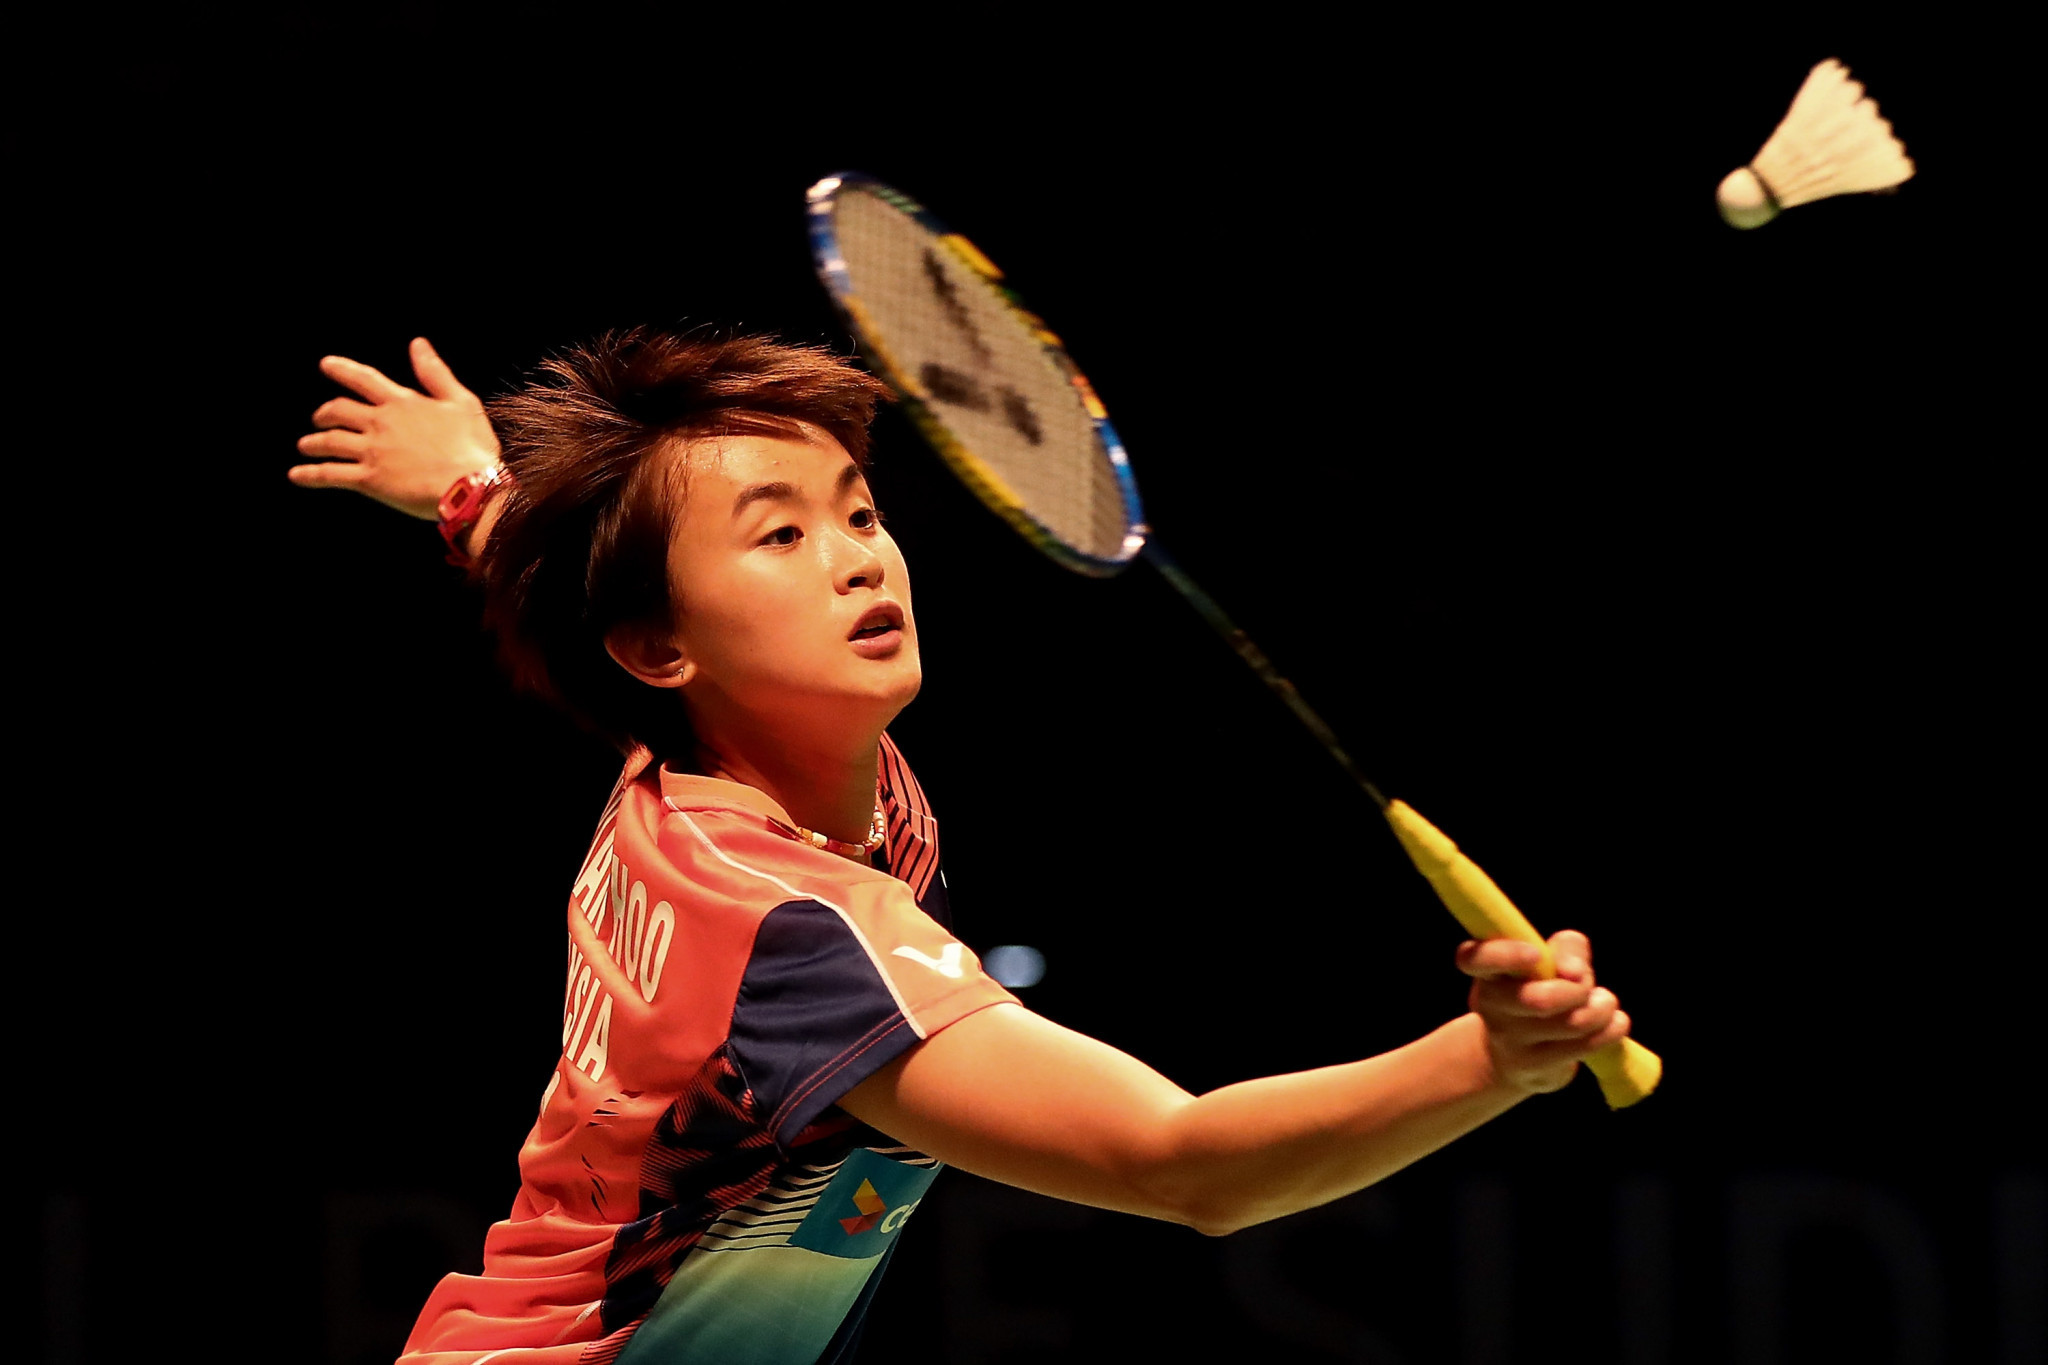 Malaysian badminton player Hoo moves retirement to after postponed Tokyo 2020